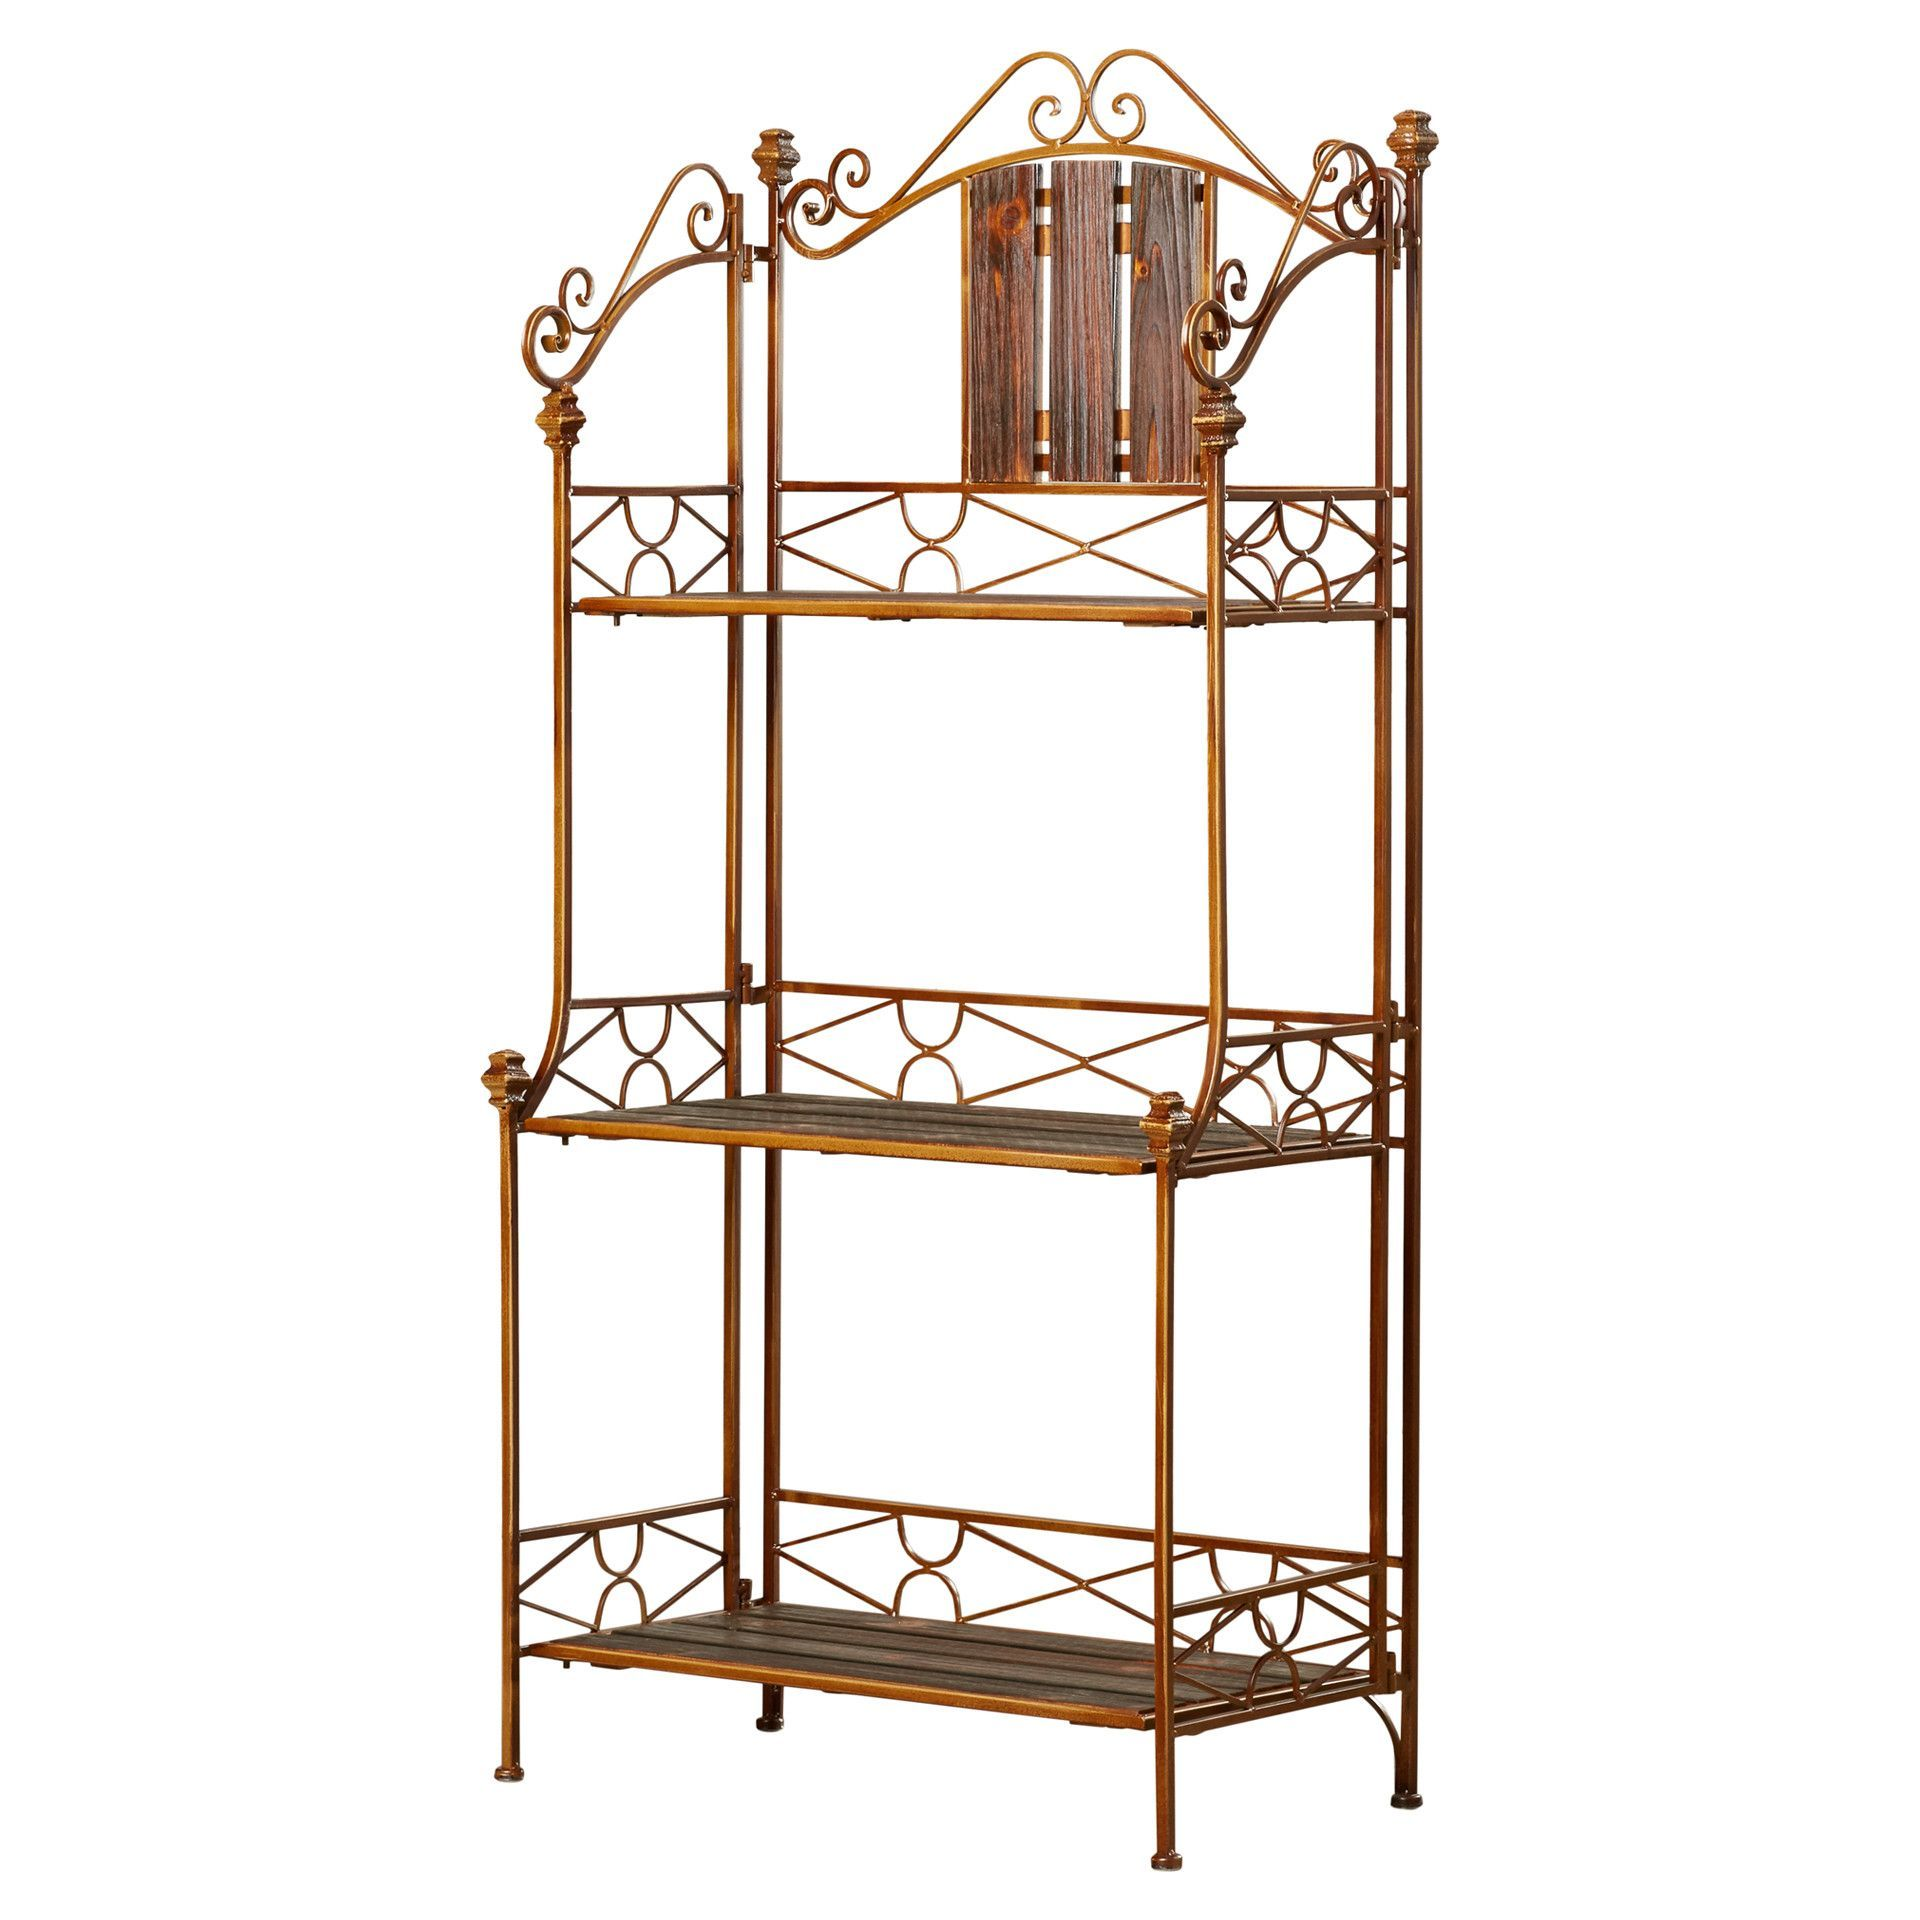 Dandre 3 Tier Kitchen Iron Baker S Rack Rustic Bakers Racks